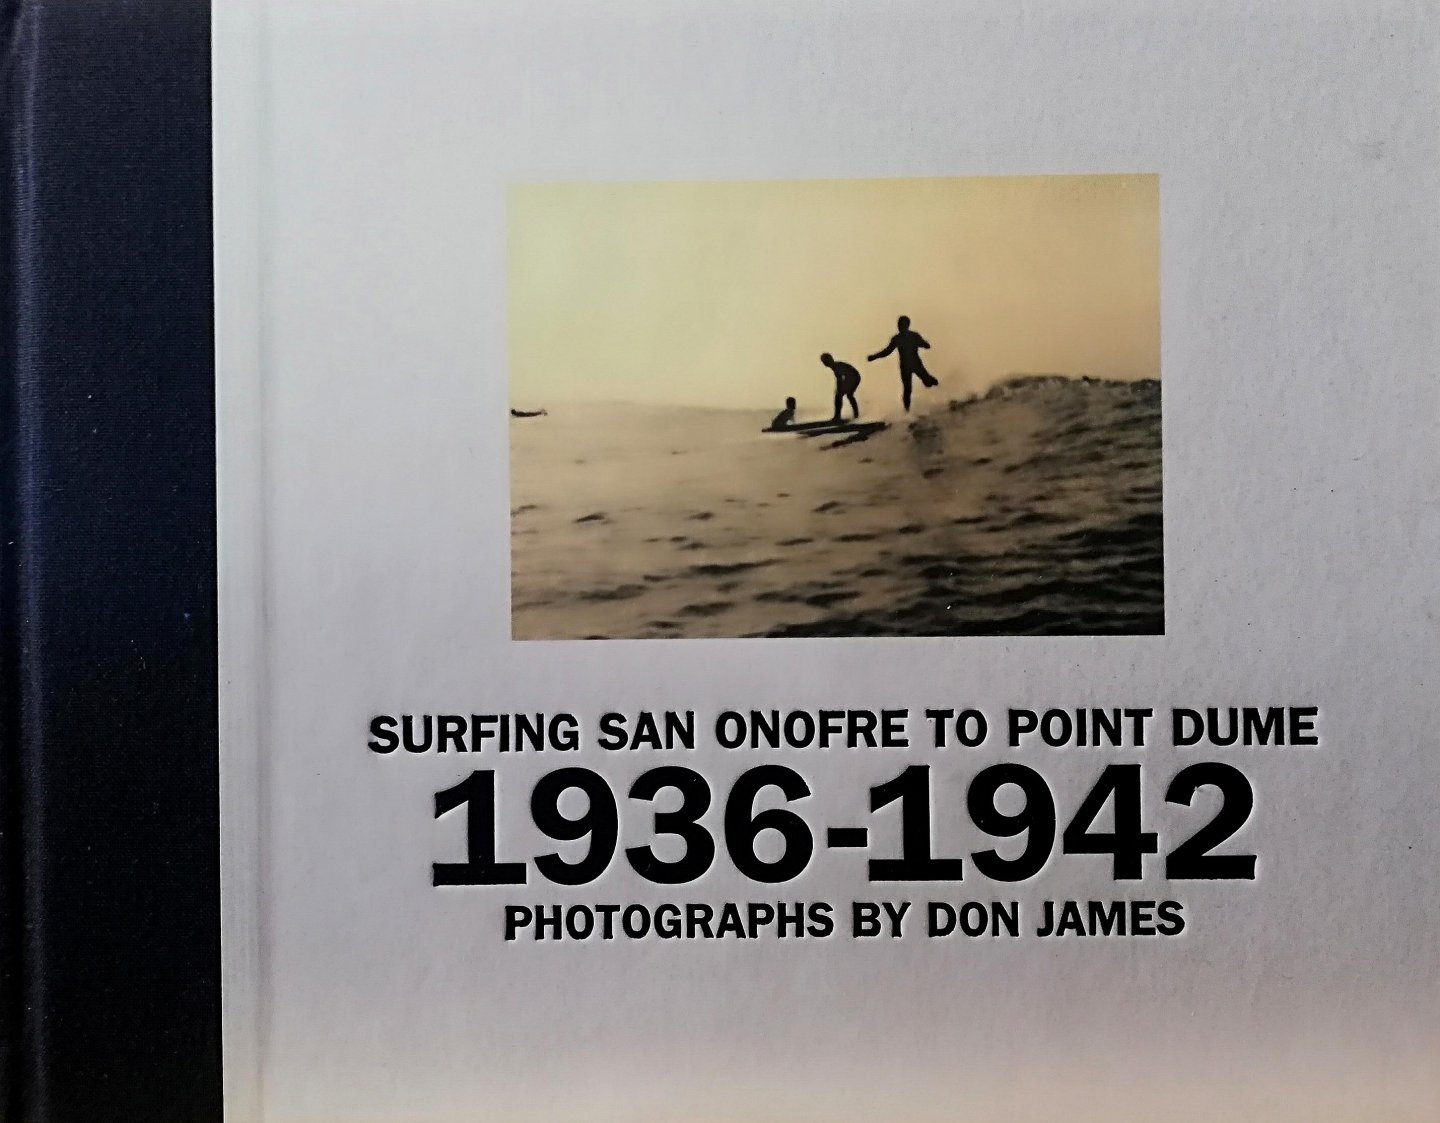 (JAMES, DON). JAMES, DON. FOREWORD BY C.R. STECYK . [ ISBN  9780811821001  ] 1107 ( Zeer zeldzaam ,) - Surfing  San  Onofre  to  Point  dume   1936  -  1942 . ( Photographs by Don James .